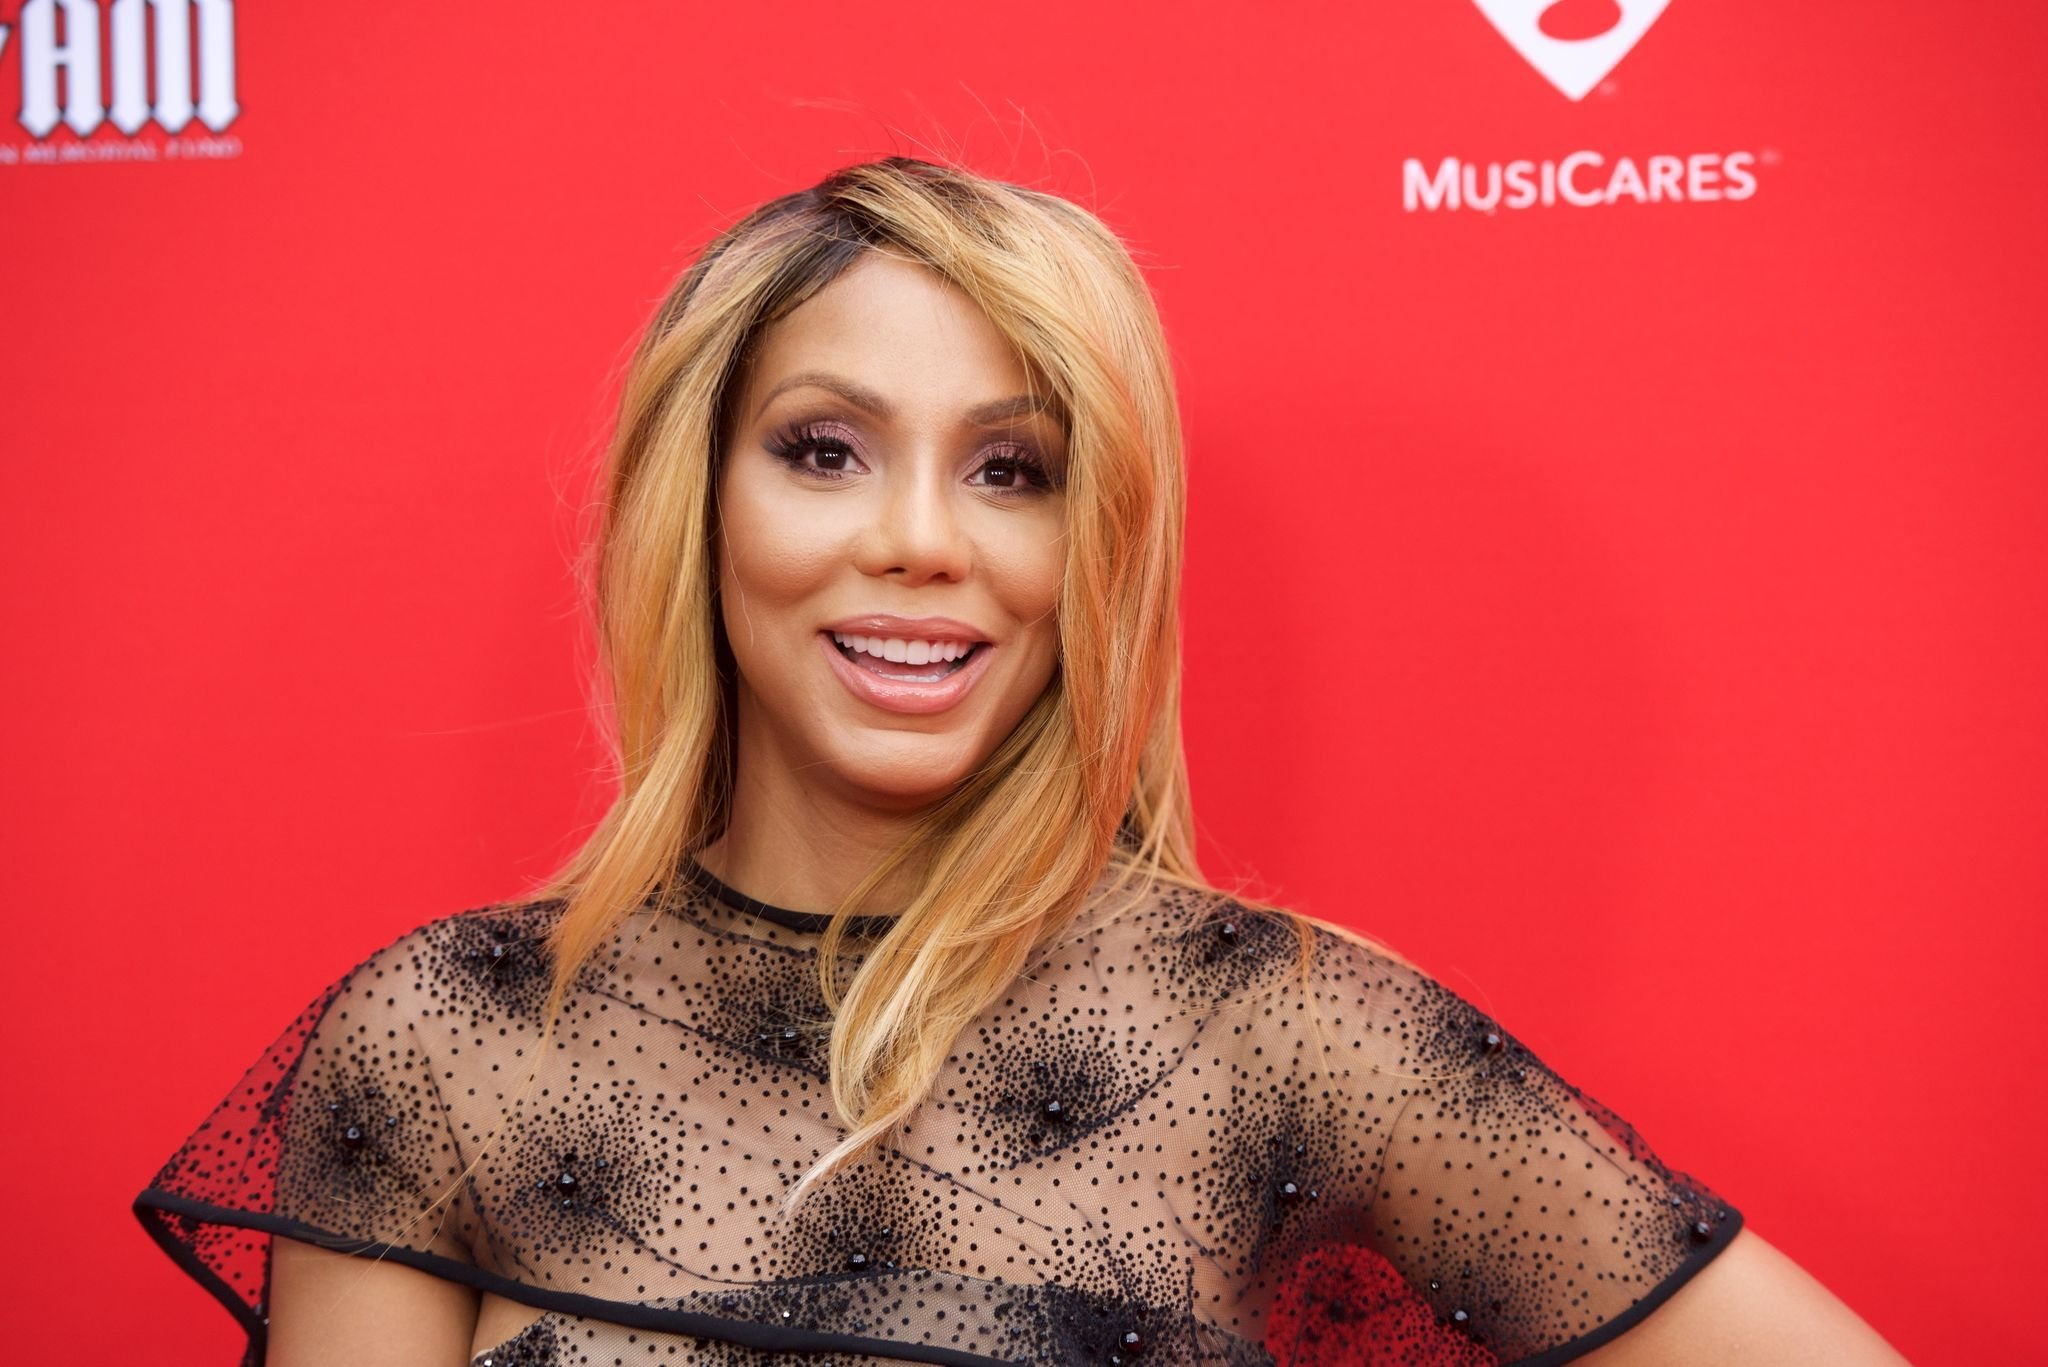 Tamar Braxton attends the 12th Annual MusiCares MAP Fund Tribute Concert at the Novo by Microsoft on May 19, 2016 | Source: Getty Images/GlobalImagesUkraine